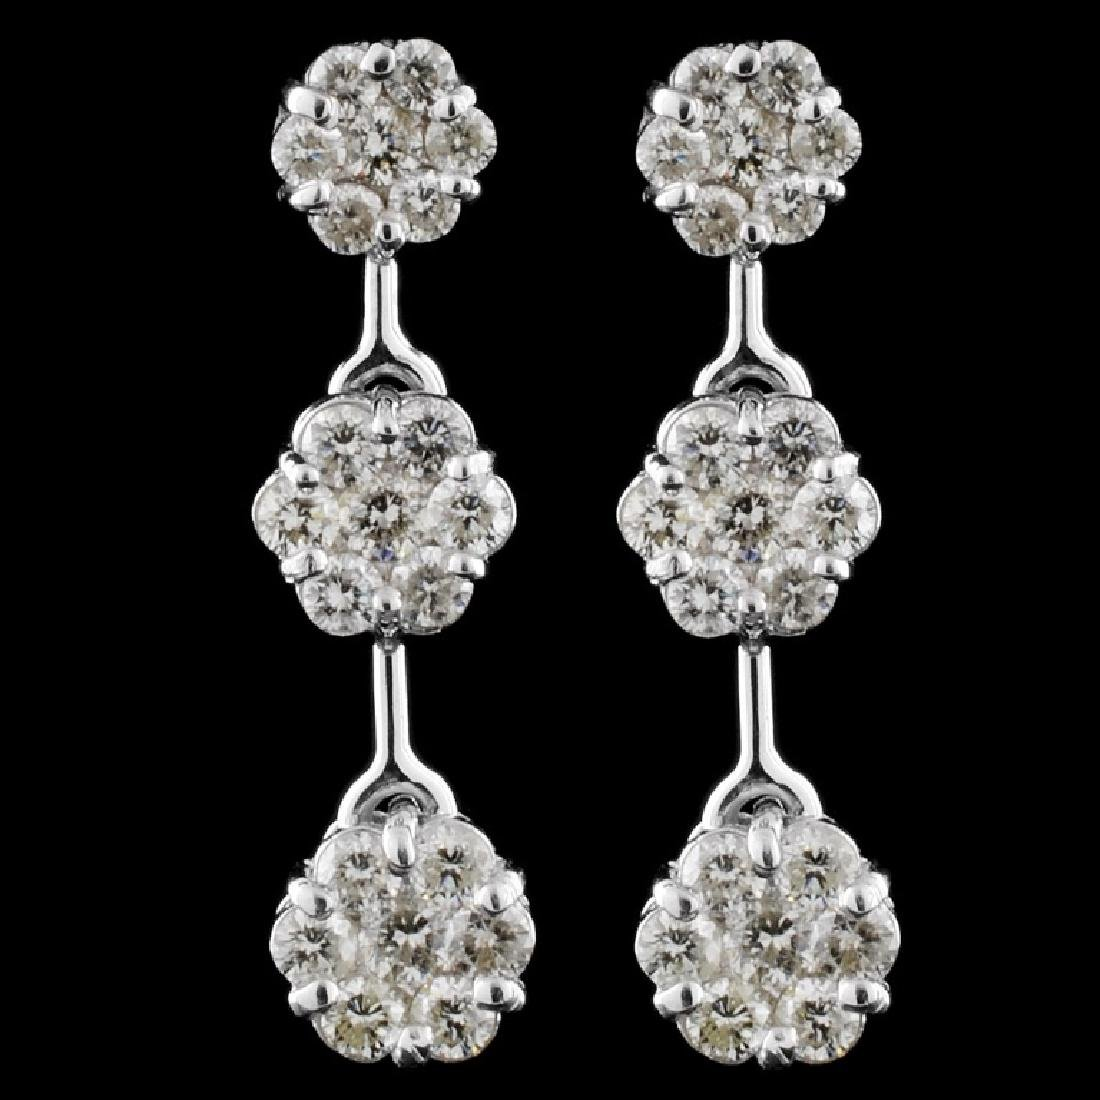 14k White Gold 2.10ctw Diamond Earrings